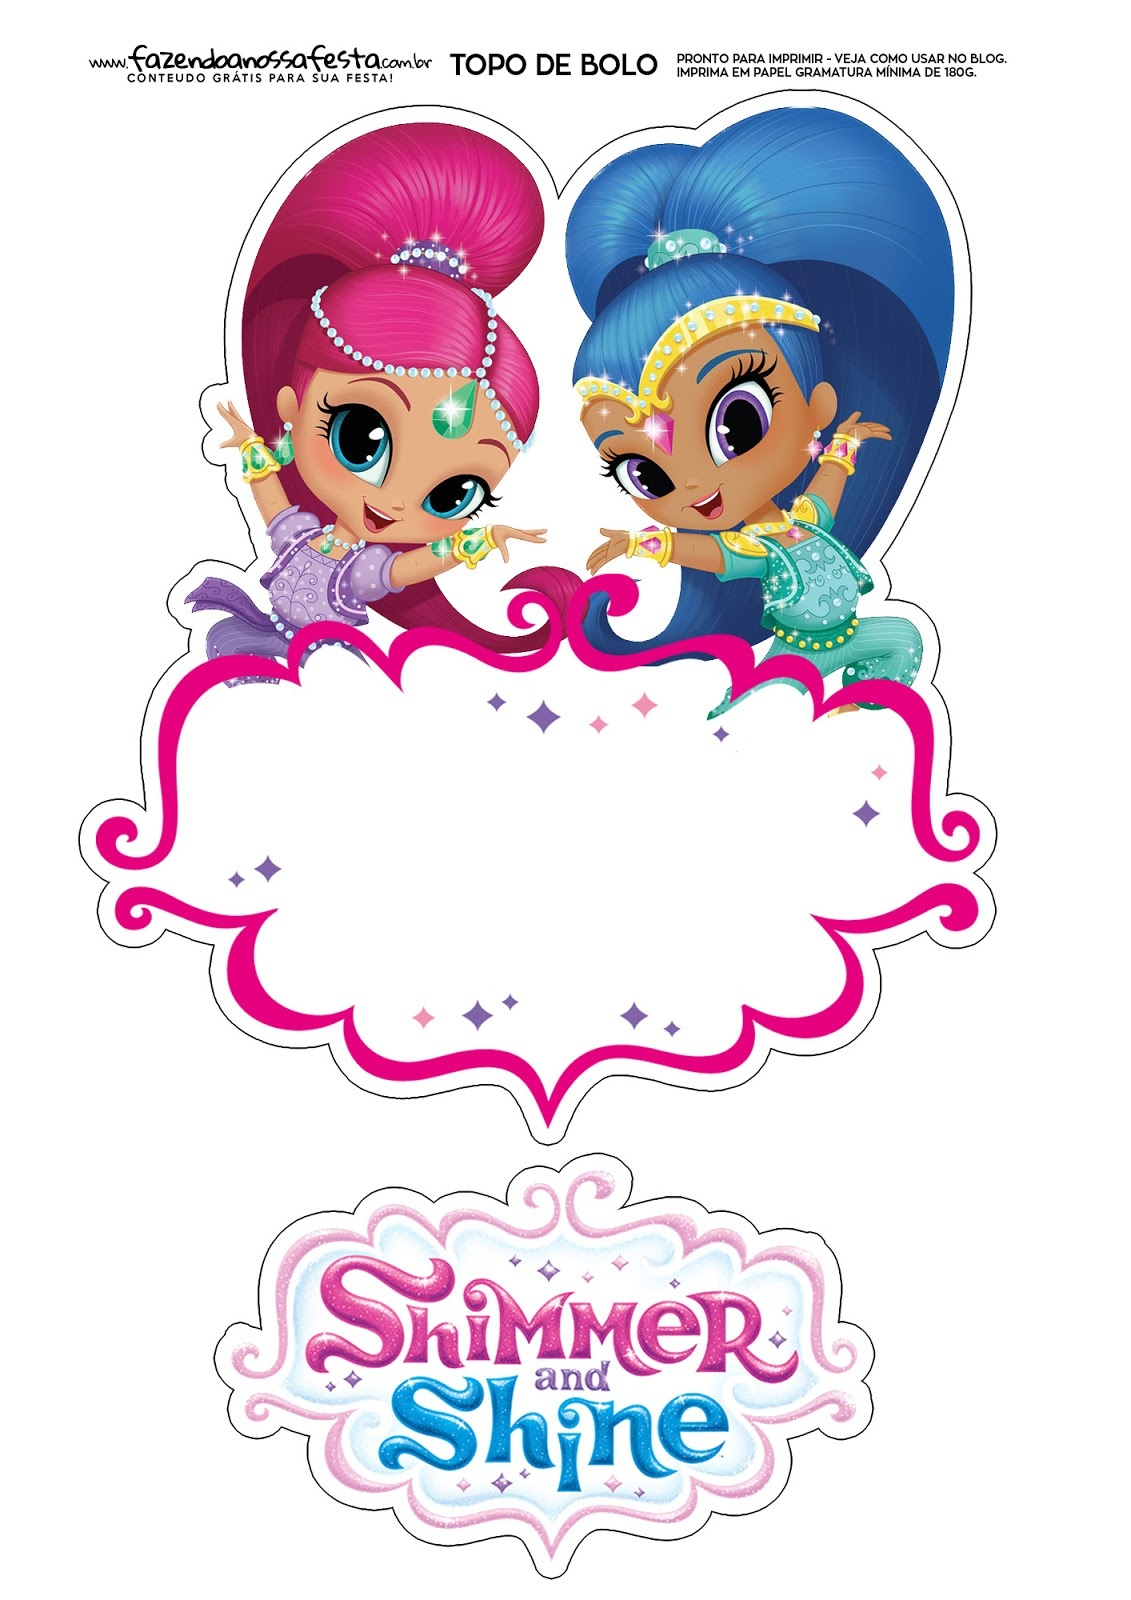 Shimmer And Shine Free Printable Cake Toppers. - Oh My Fiesta! In - Shimmer And Shine Free Printables